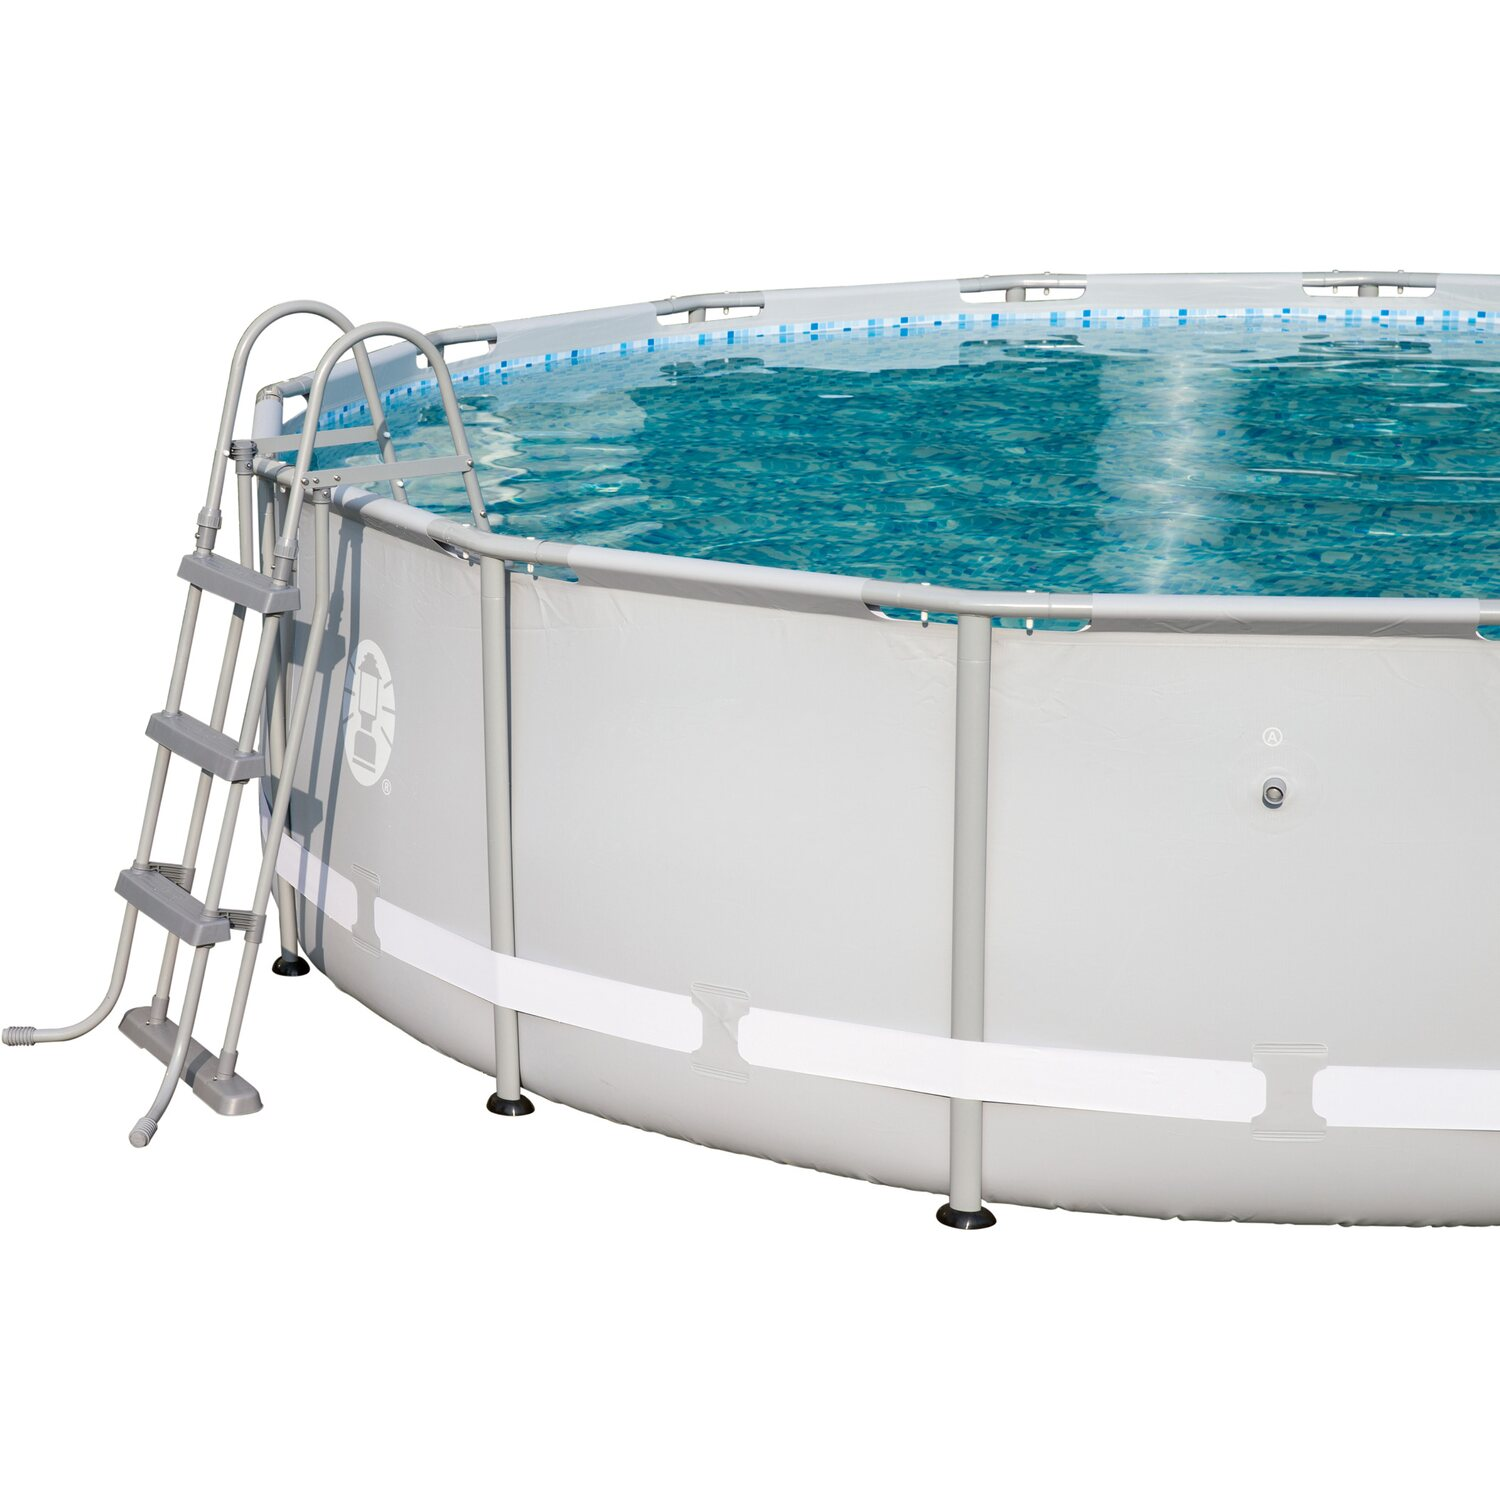 Bestway pool set power steel frame 427 cm x 107 cm mit for Bestway pool obi